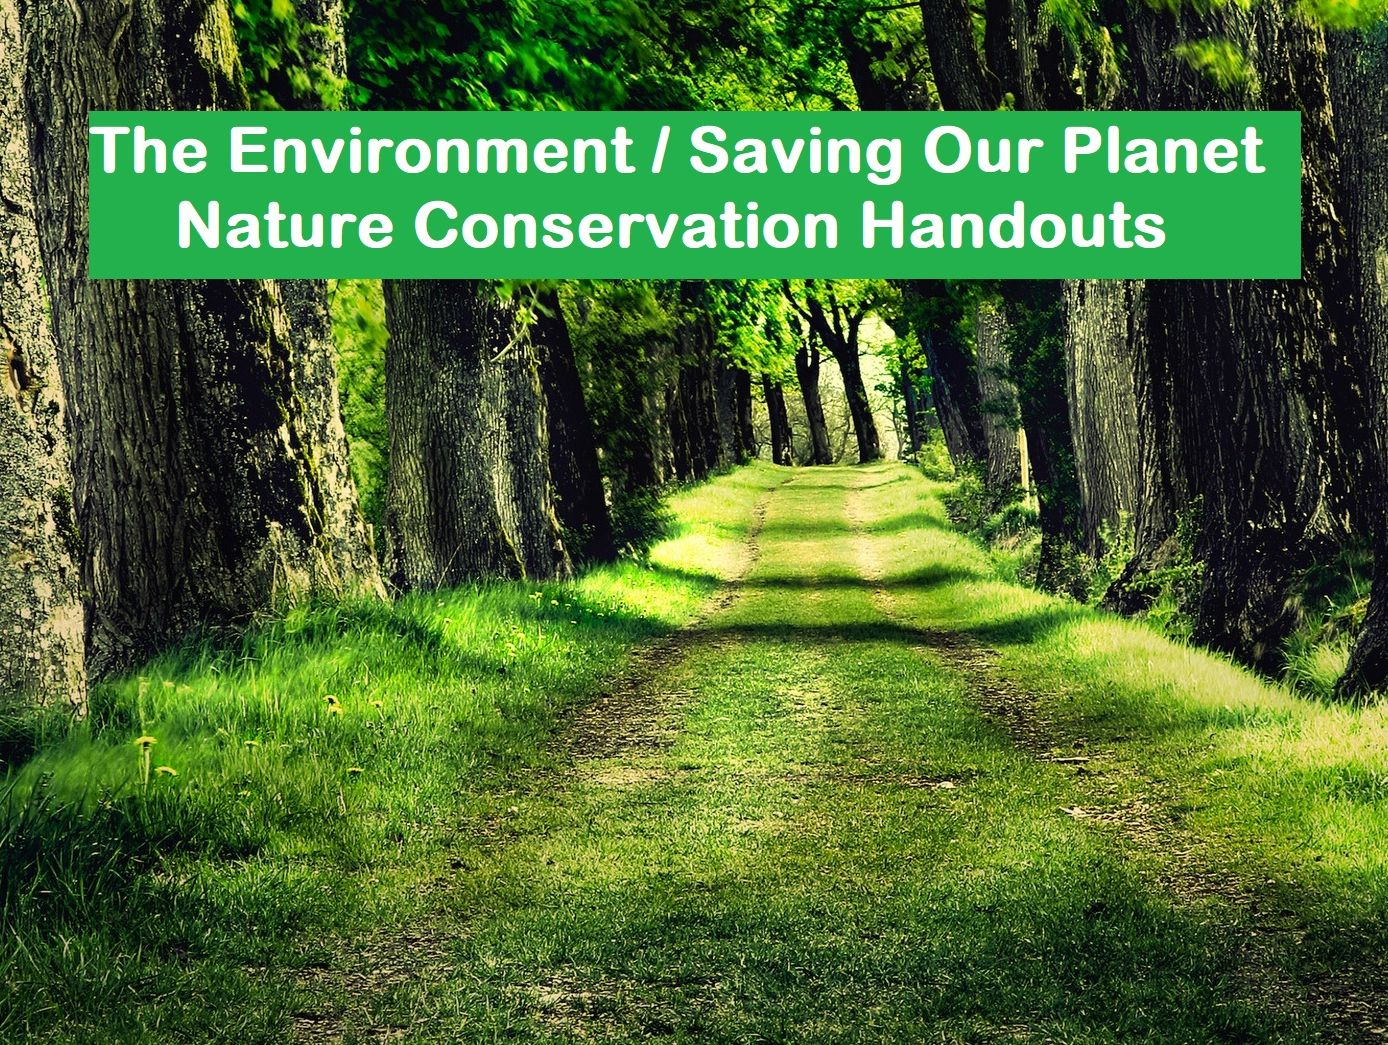 The Environment/ Saving Our Planet / Nature Conservation Handouts (SAVE 65%)